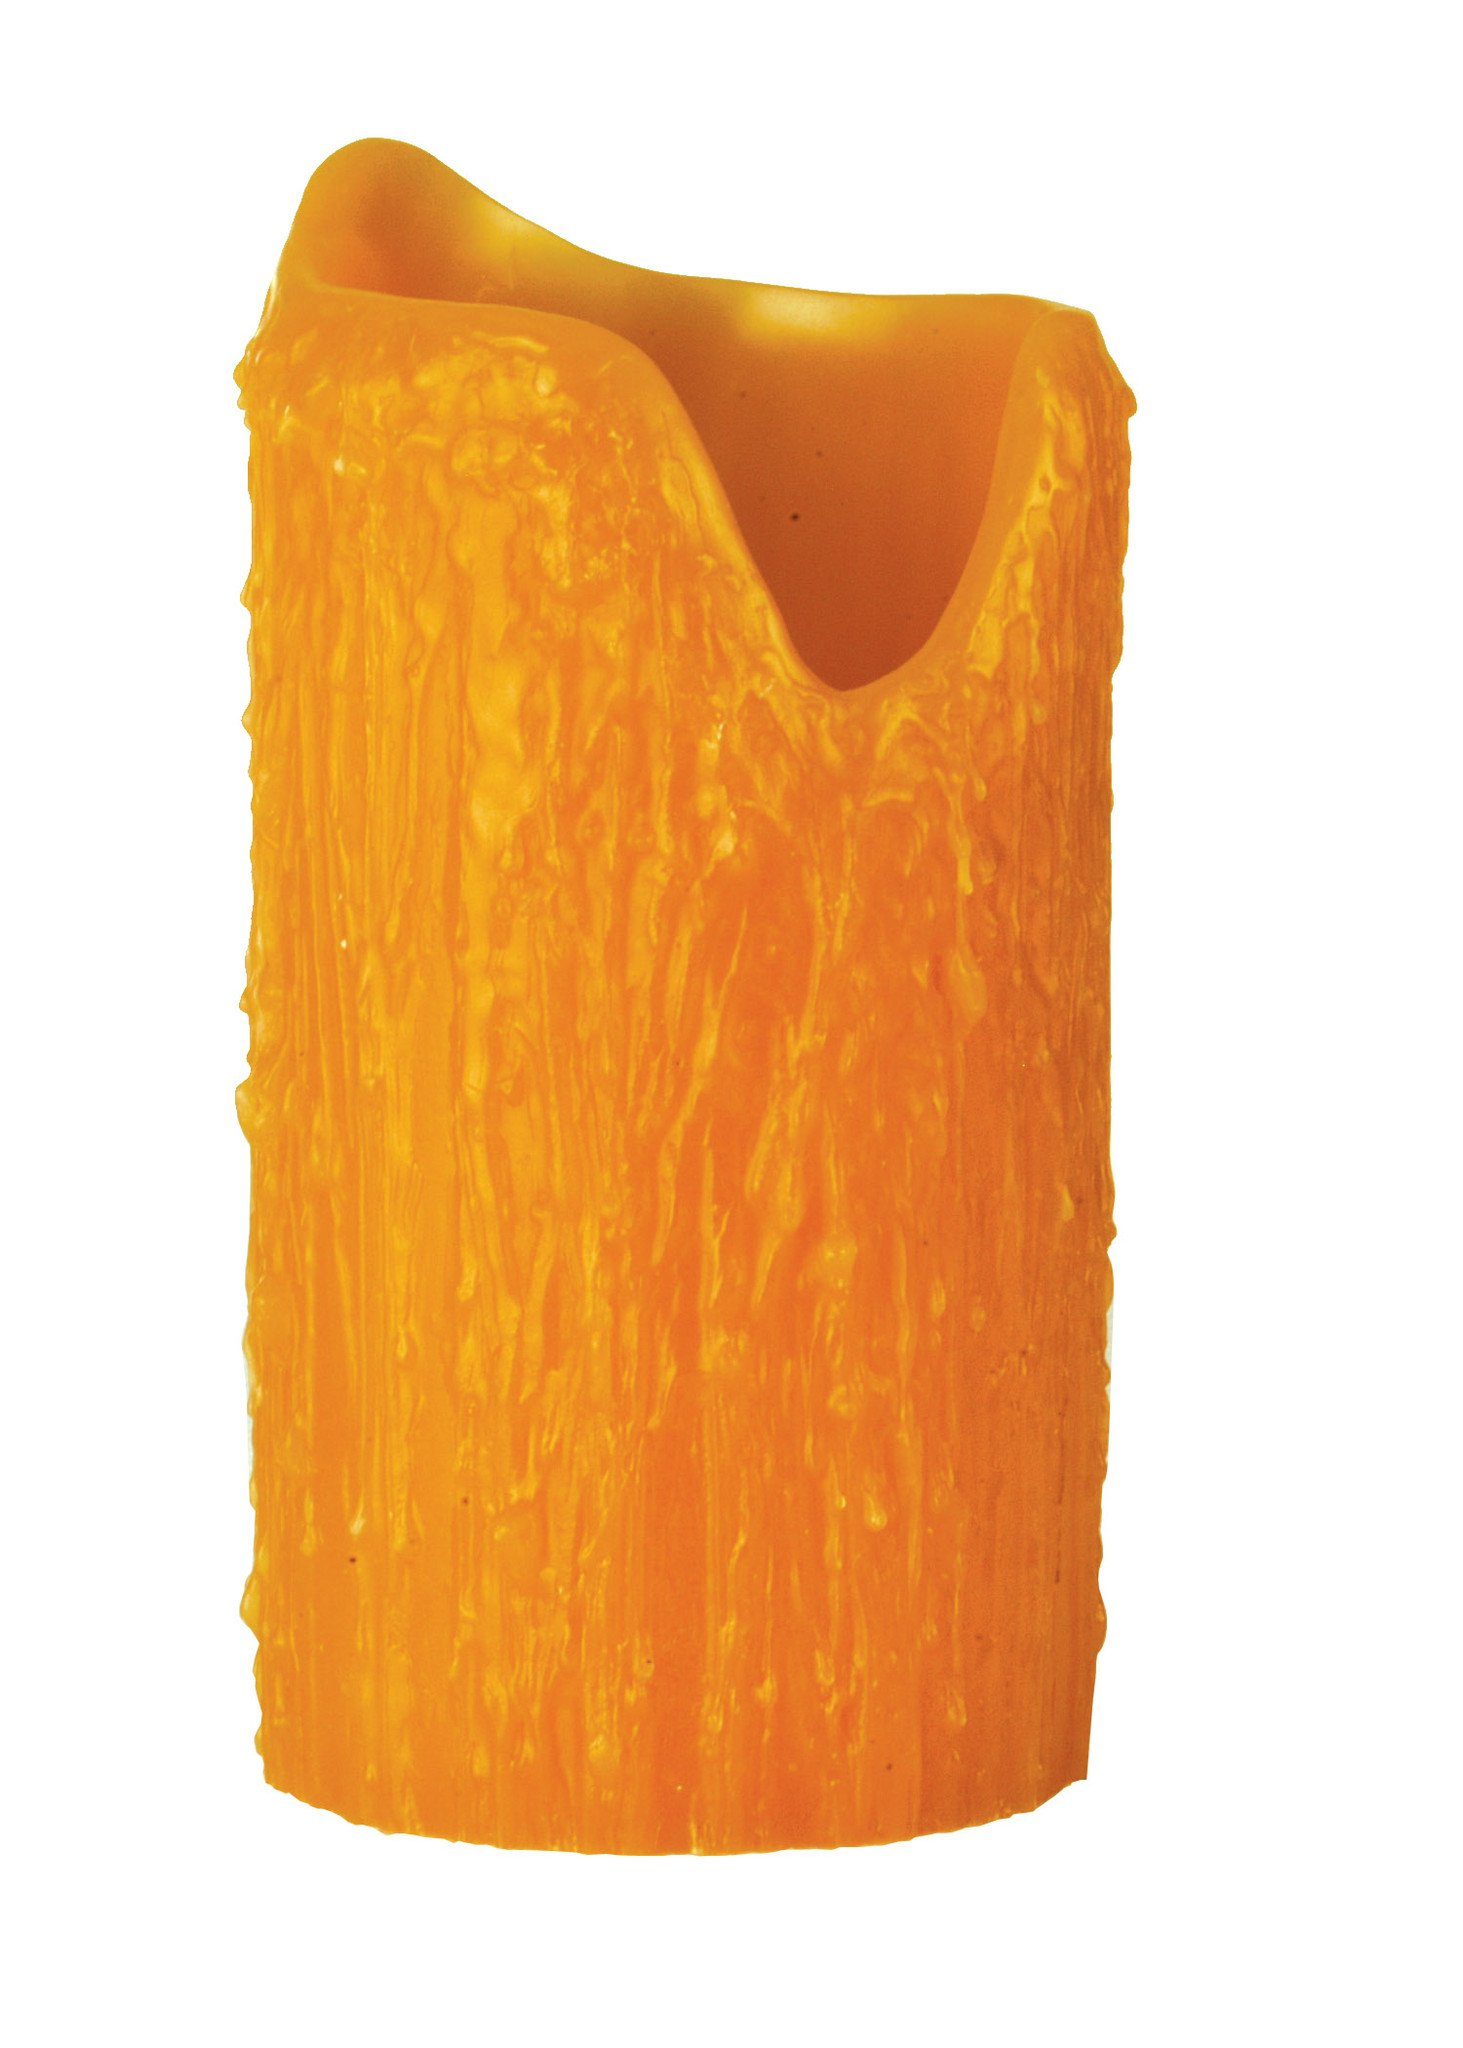 4 Inch W X 8 Inch H Poly Resin Honey Amber Uneven Top Candle Cover , Shade Only , Meyda